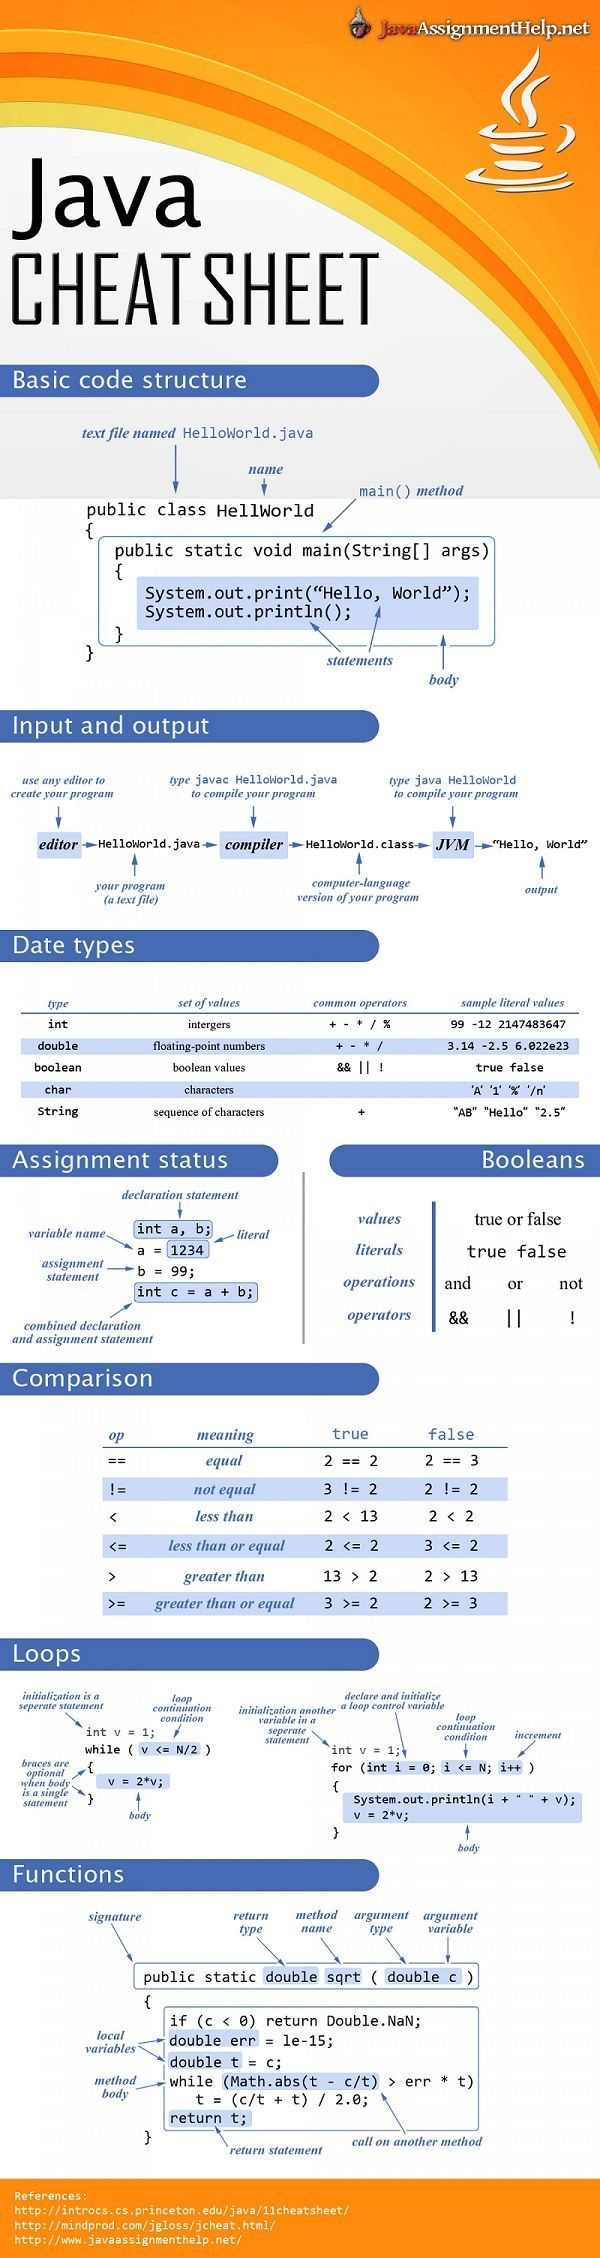 A Java Cheat Sheet For Programmers